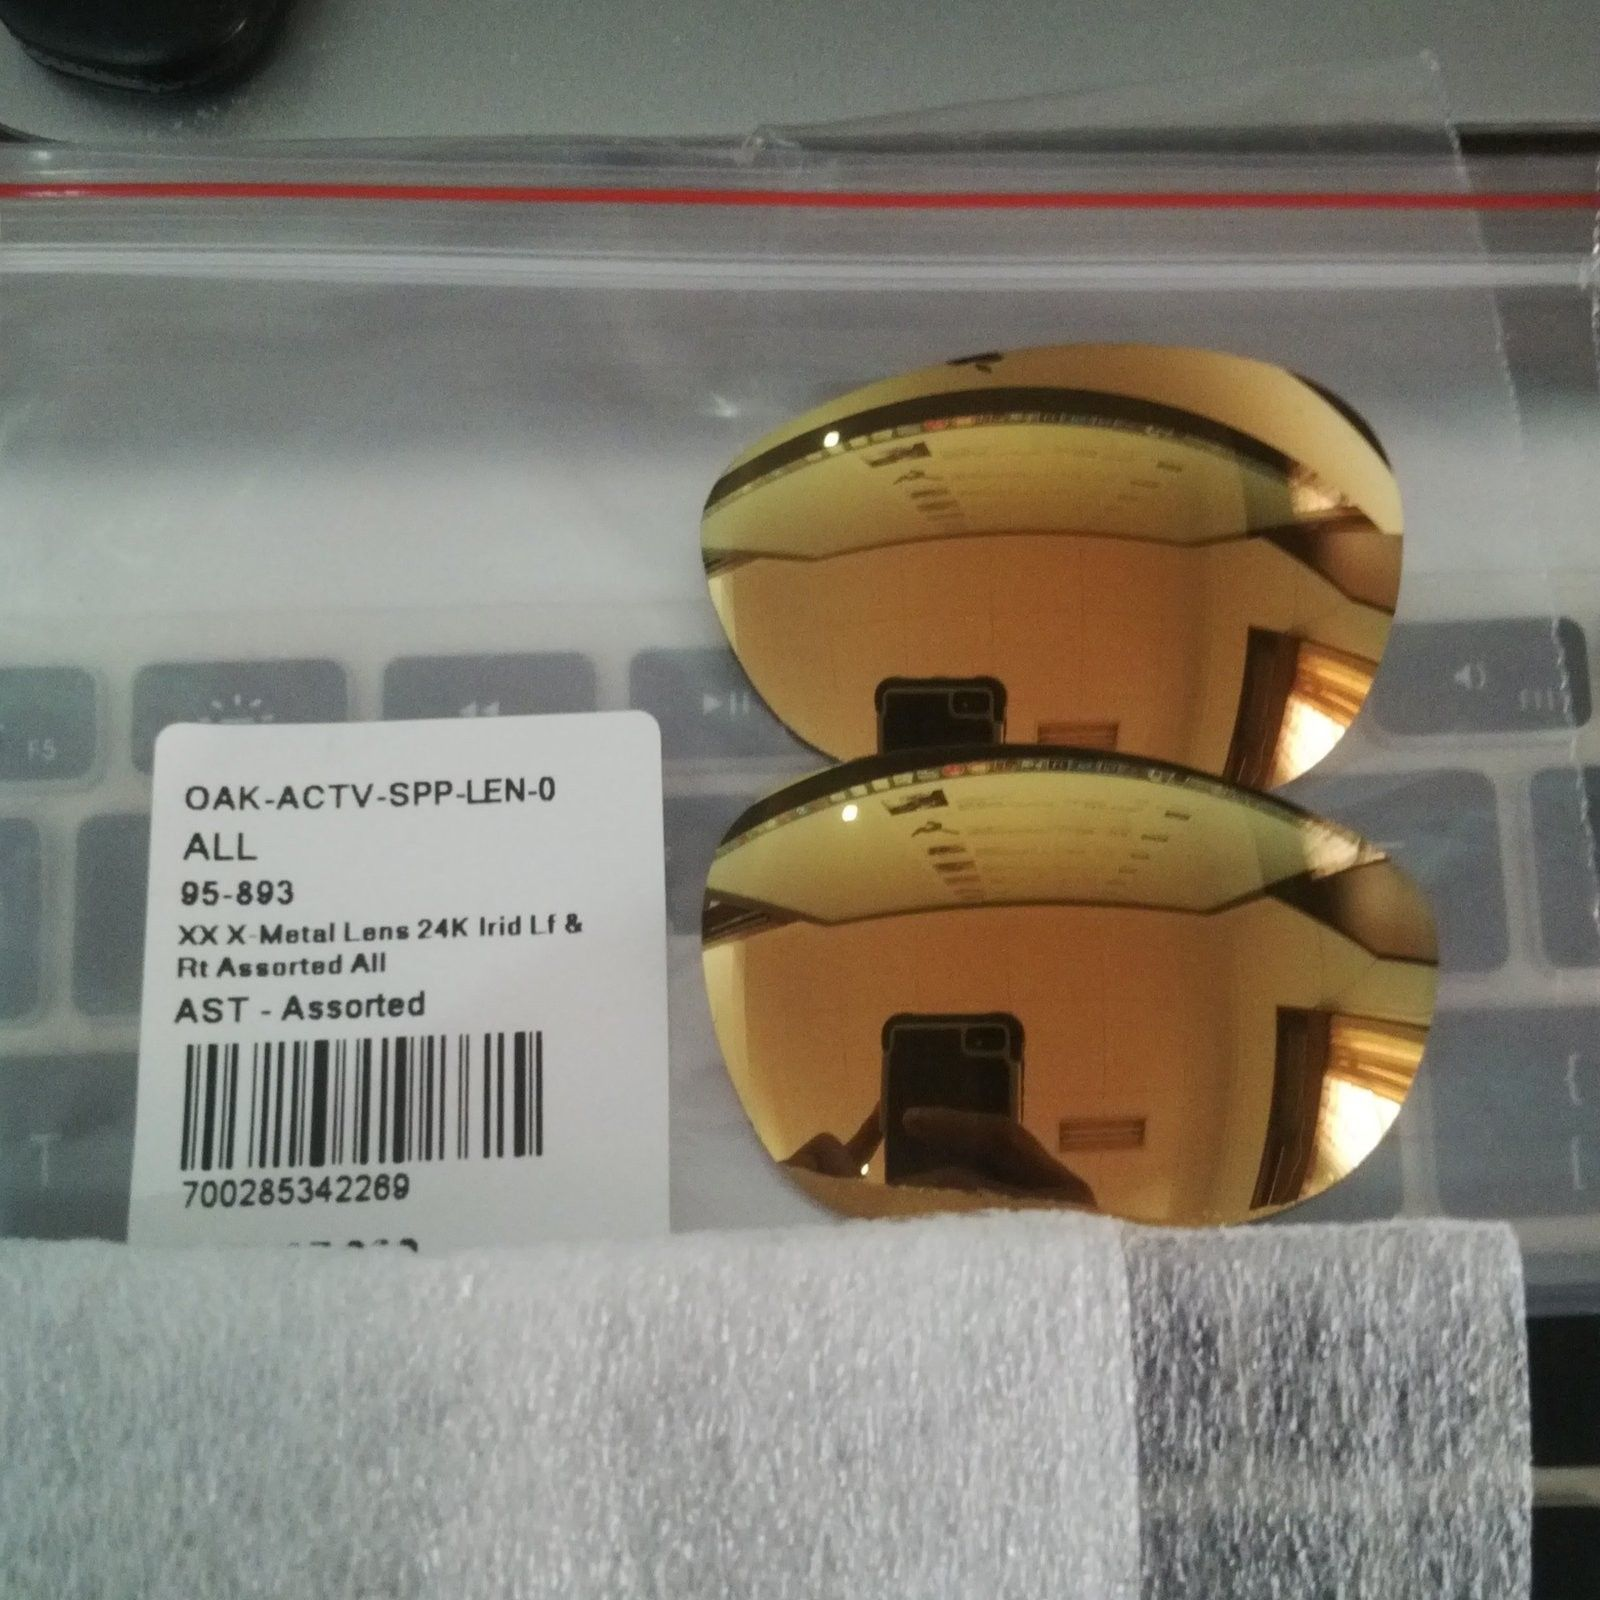 XX Metal 24K Lens New (SOLD) - IMG_20150519_100213.jpg